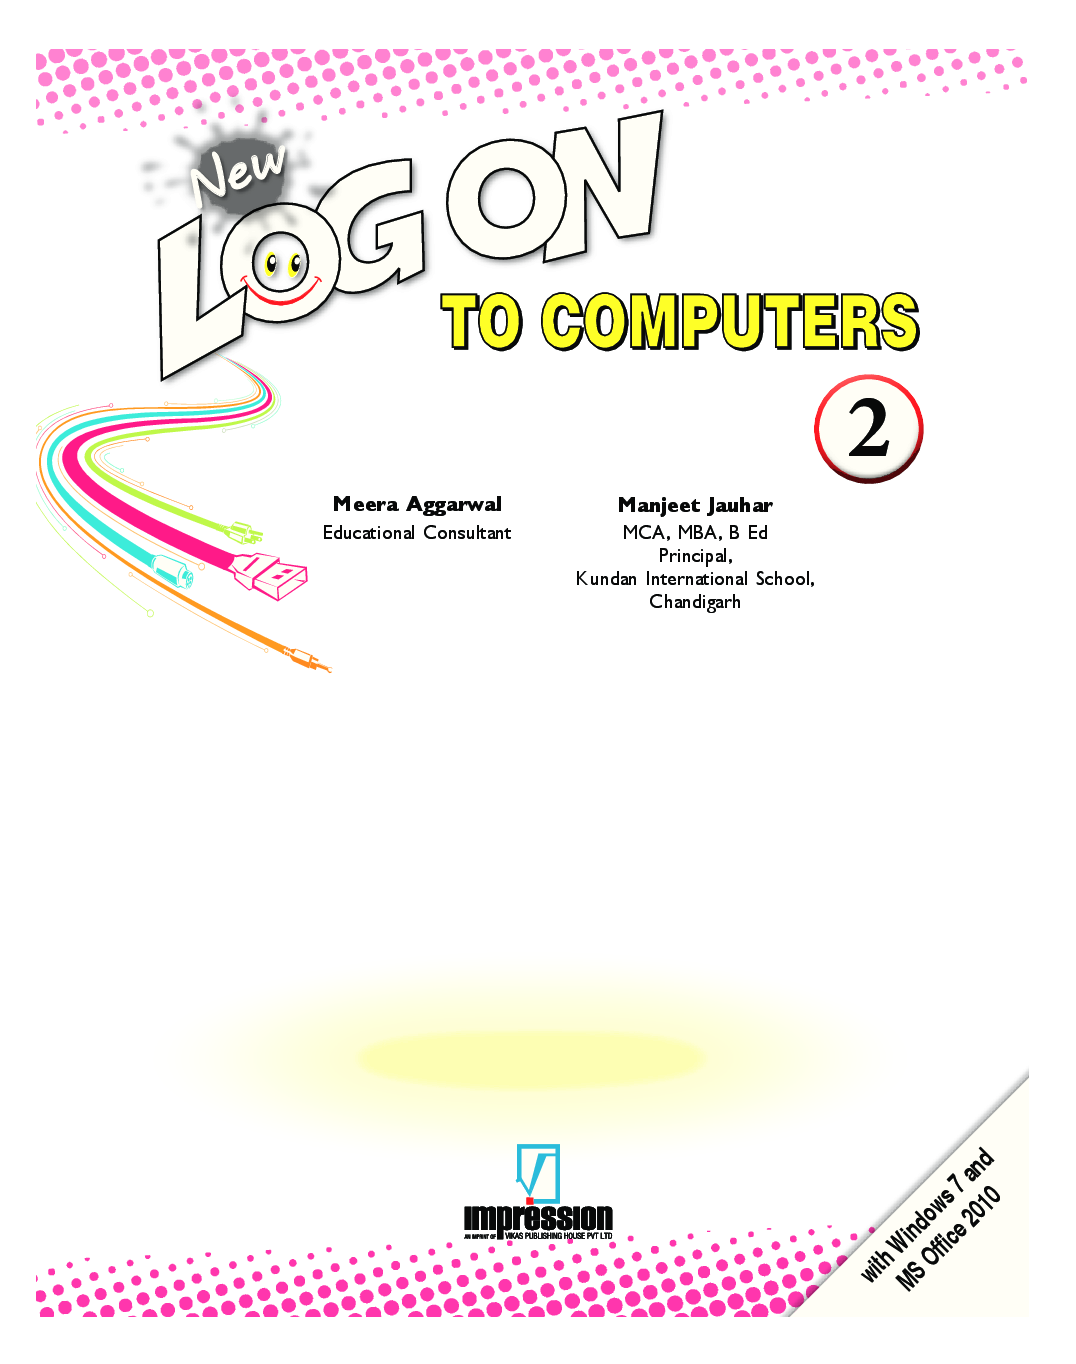 New Log On To Computers - 2 - Page 2